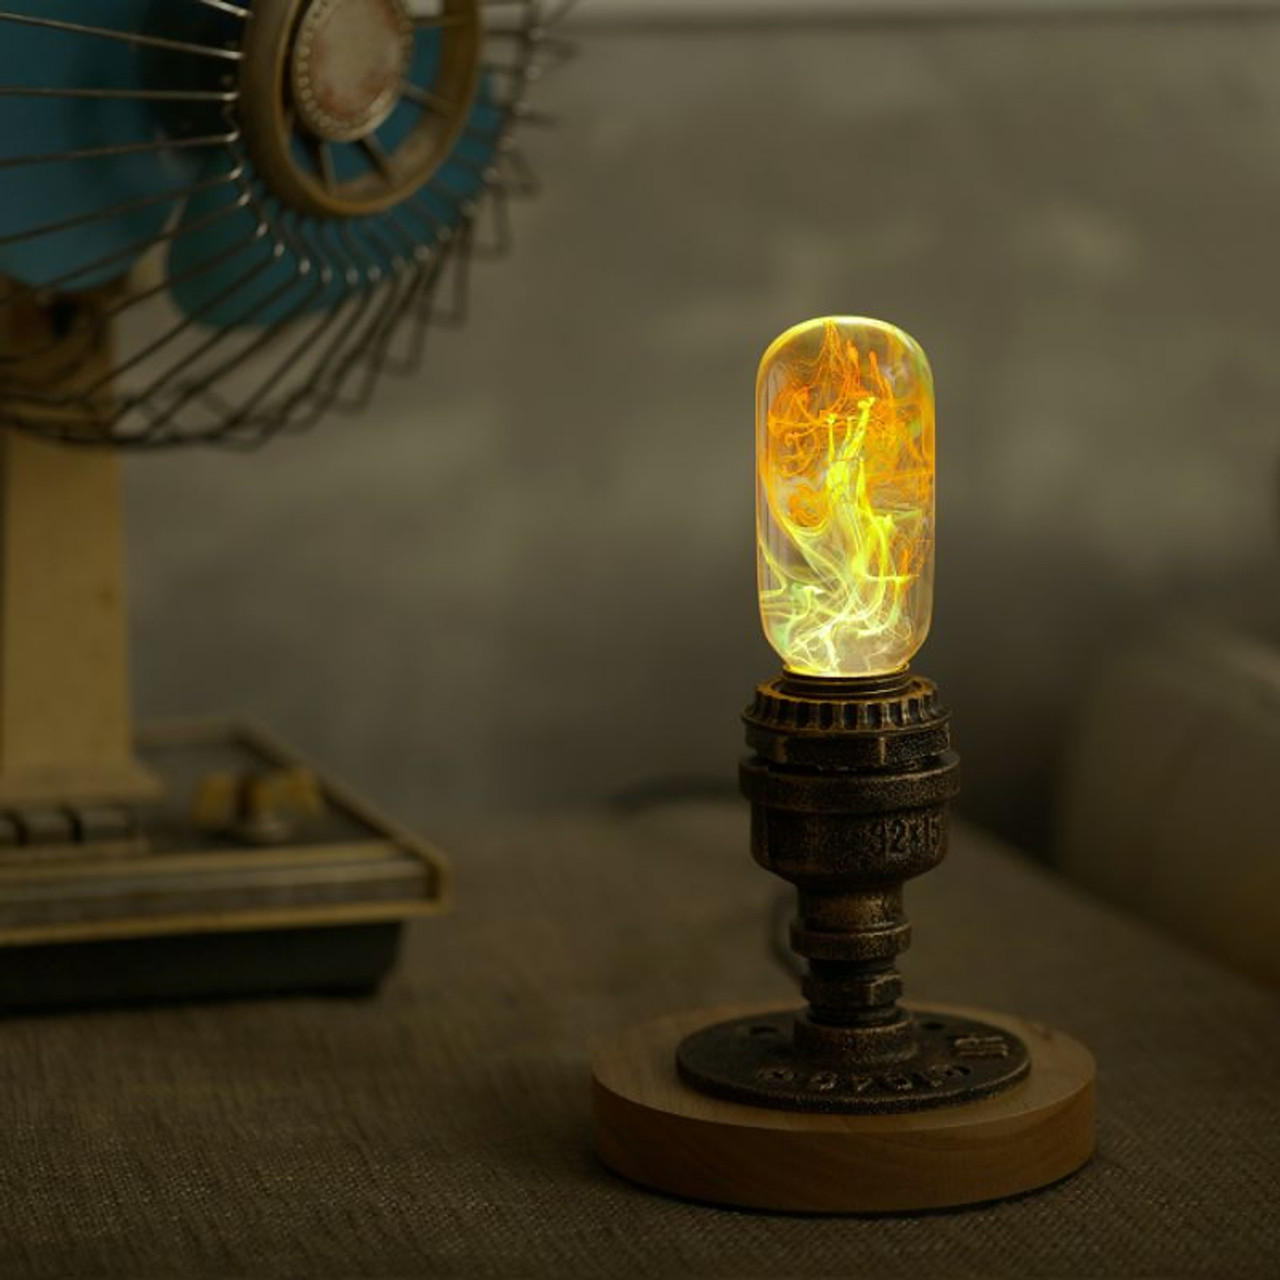 EP Light Youth Bulb Art Fixture Lamp with Optional Modern or Vintage Base Stand